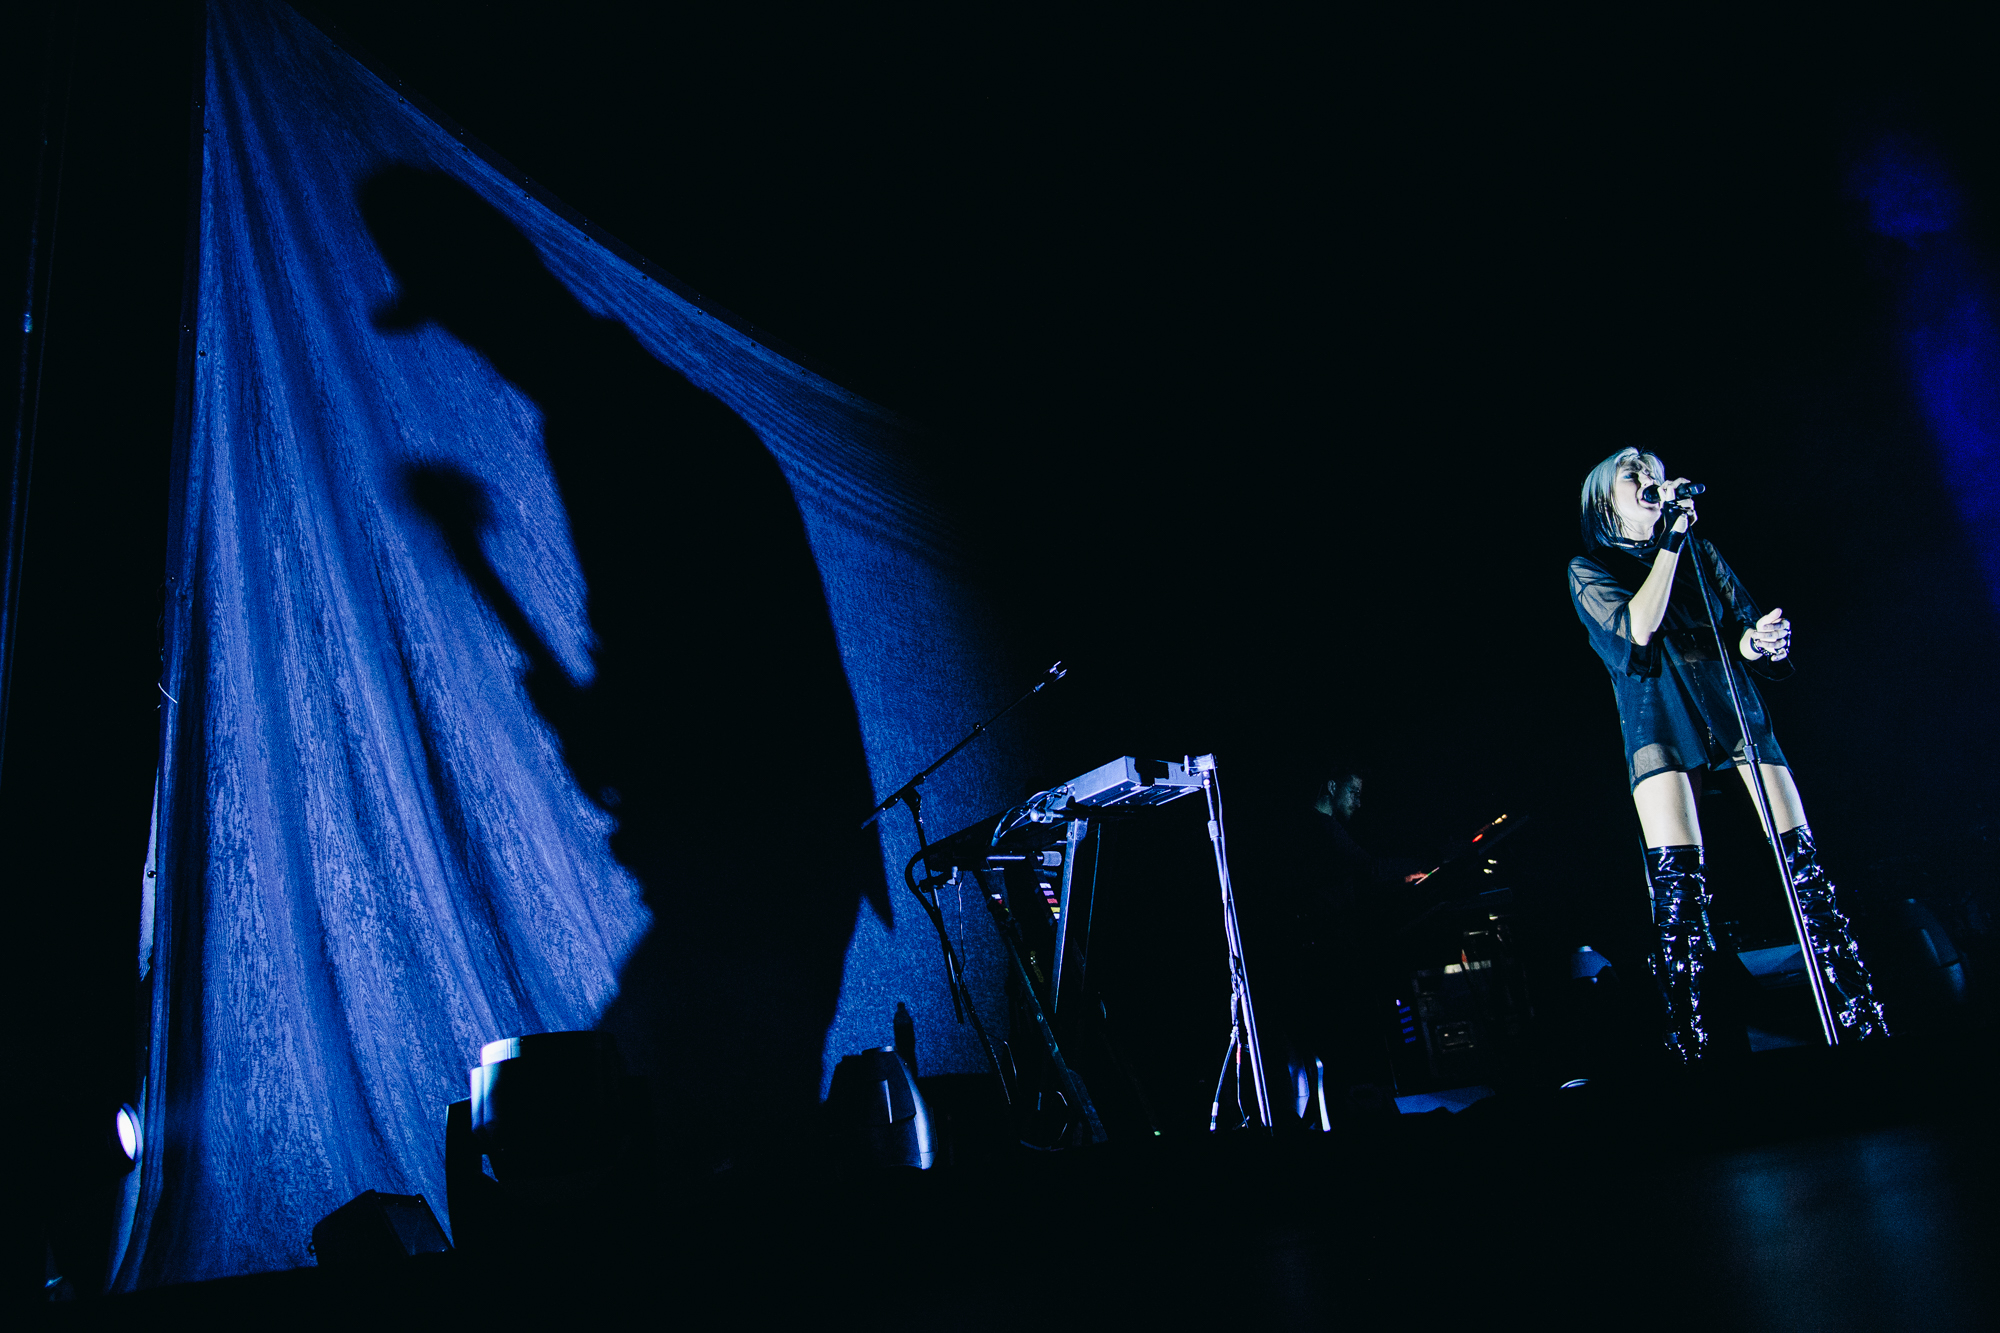 phantogram-seattle-concert-paramount-theatre-9